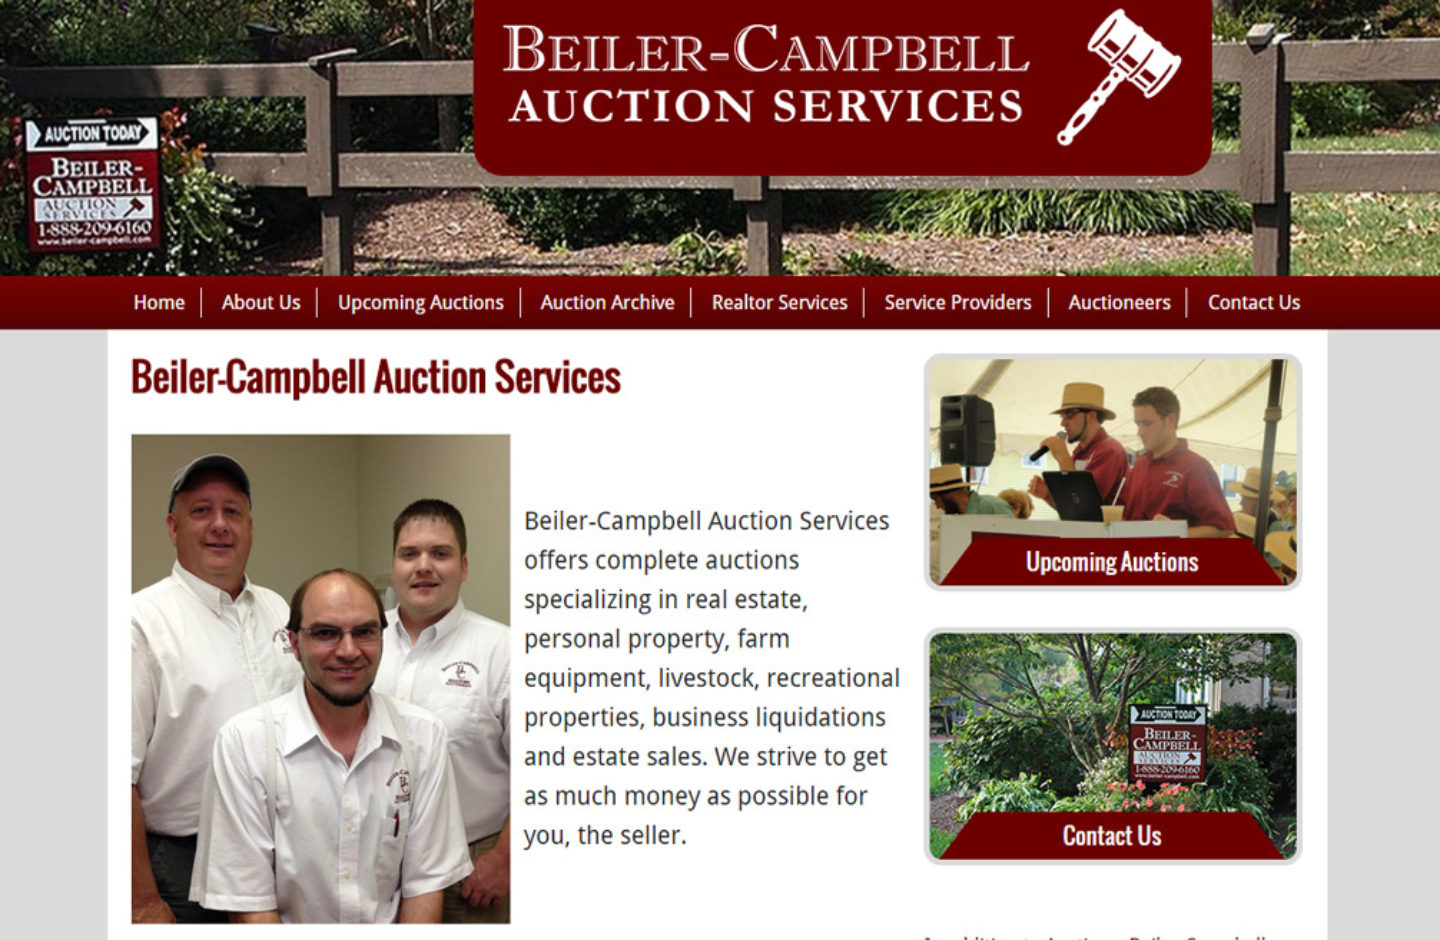 Beiler-Campbell Auctions